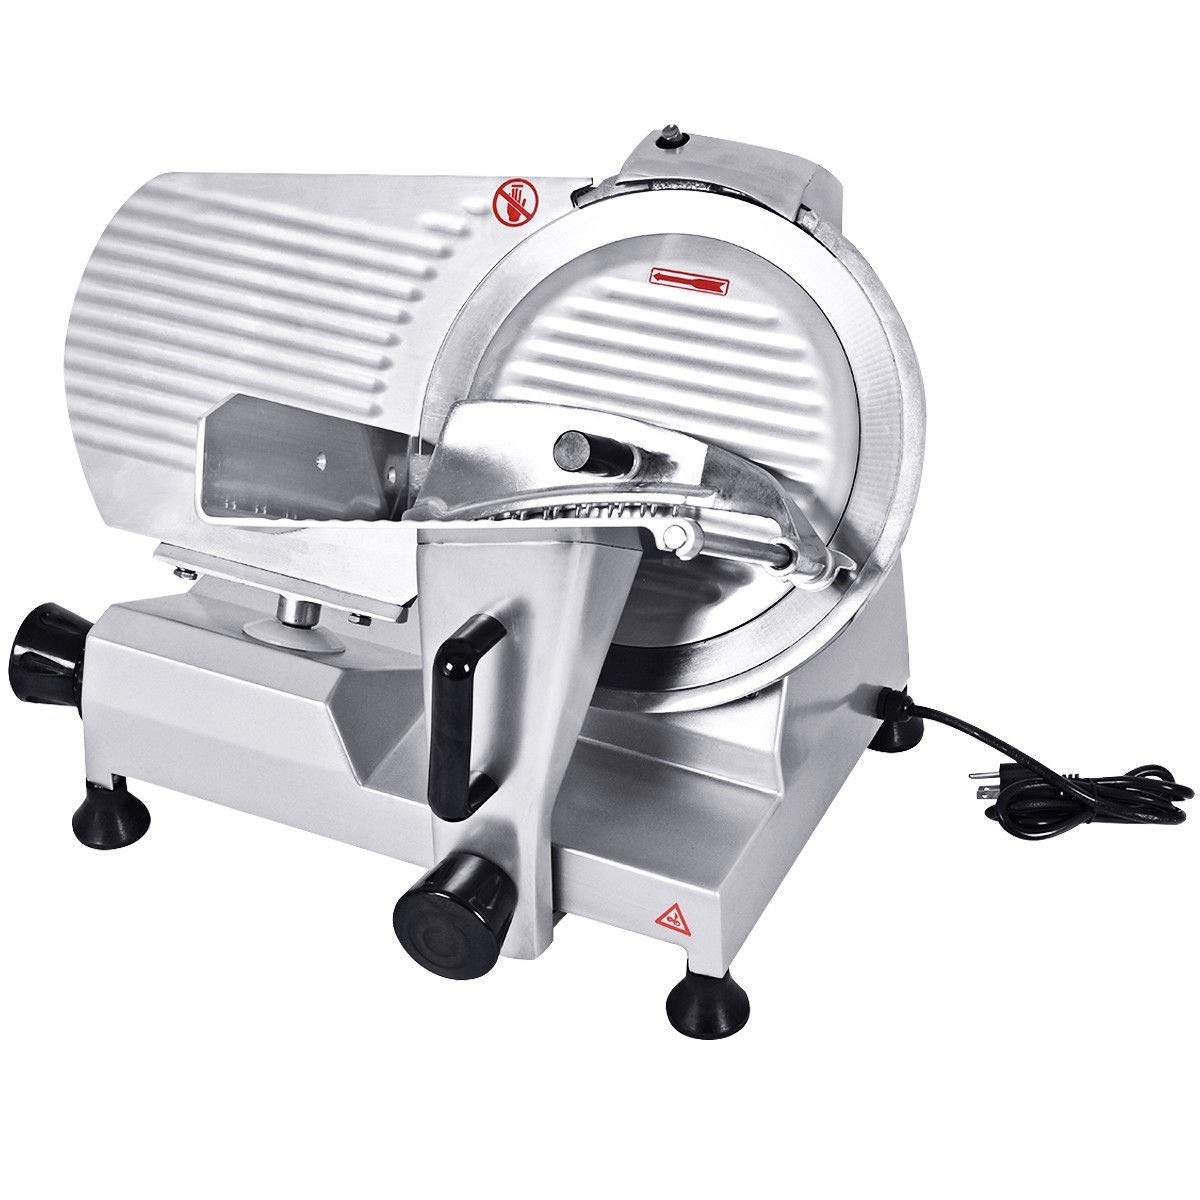 "zwan 12"" High-Efficiency Semi-Auto Commercial Meat Slicer with Ebook"